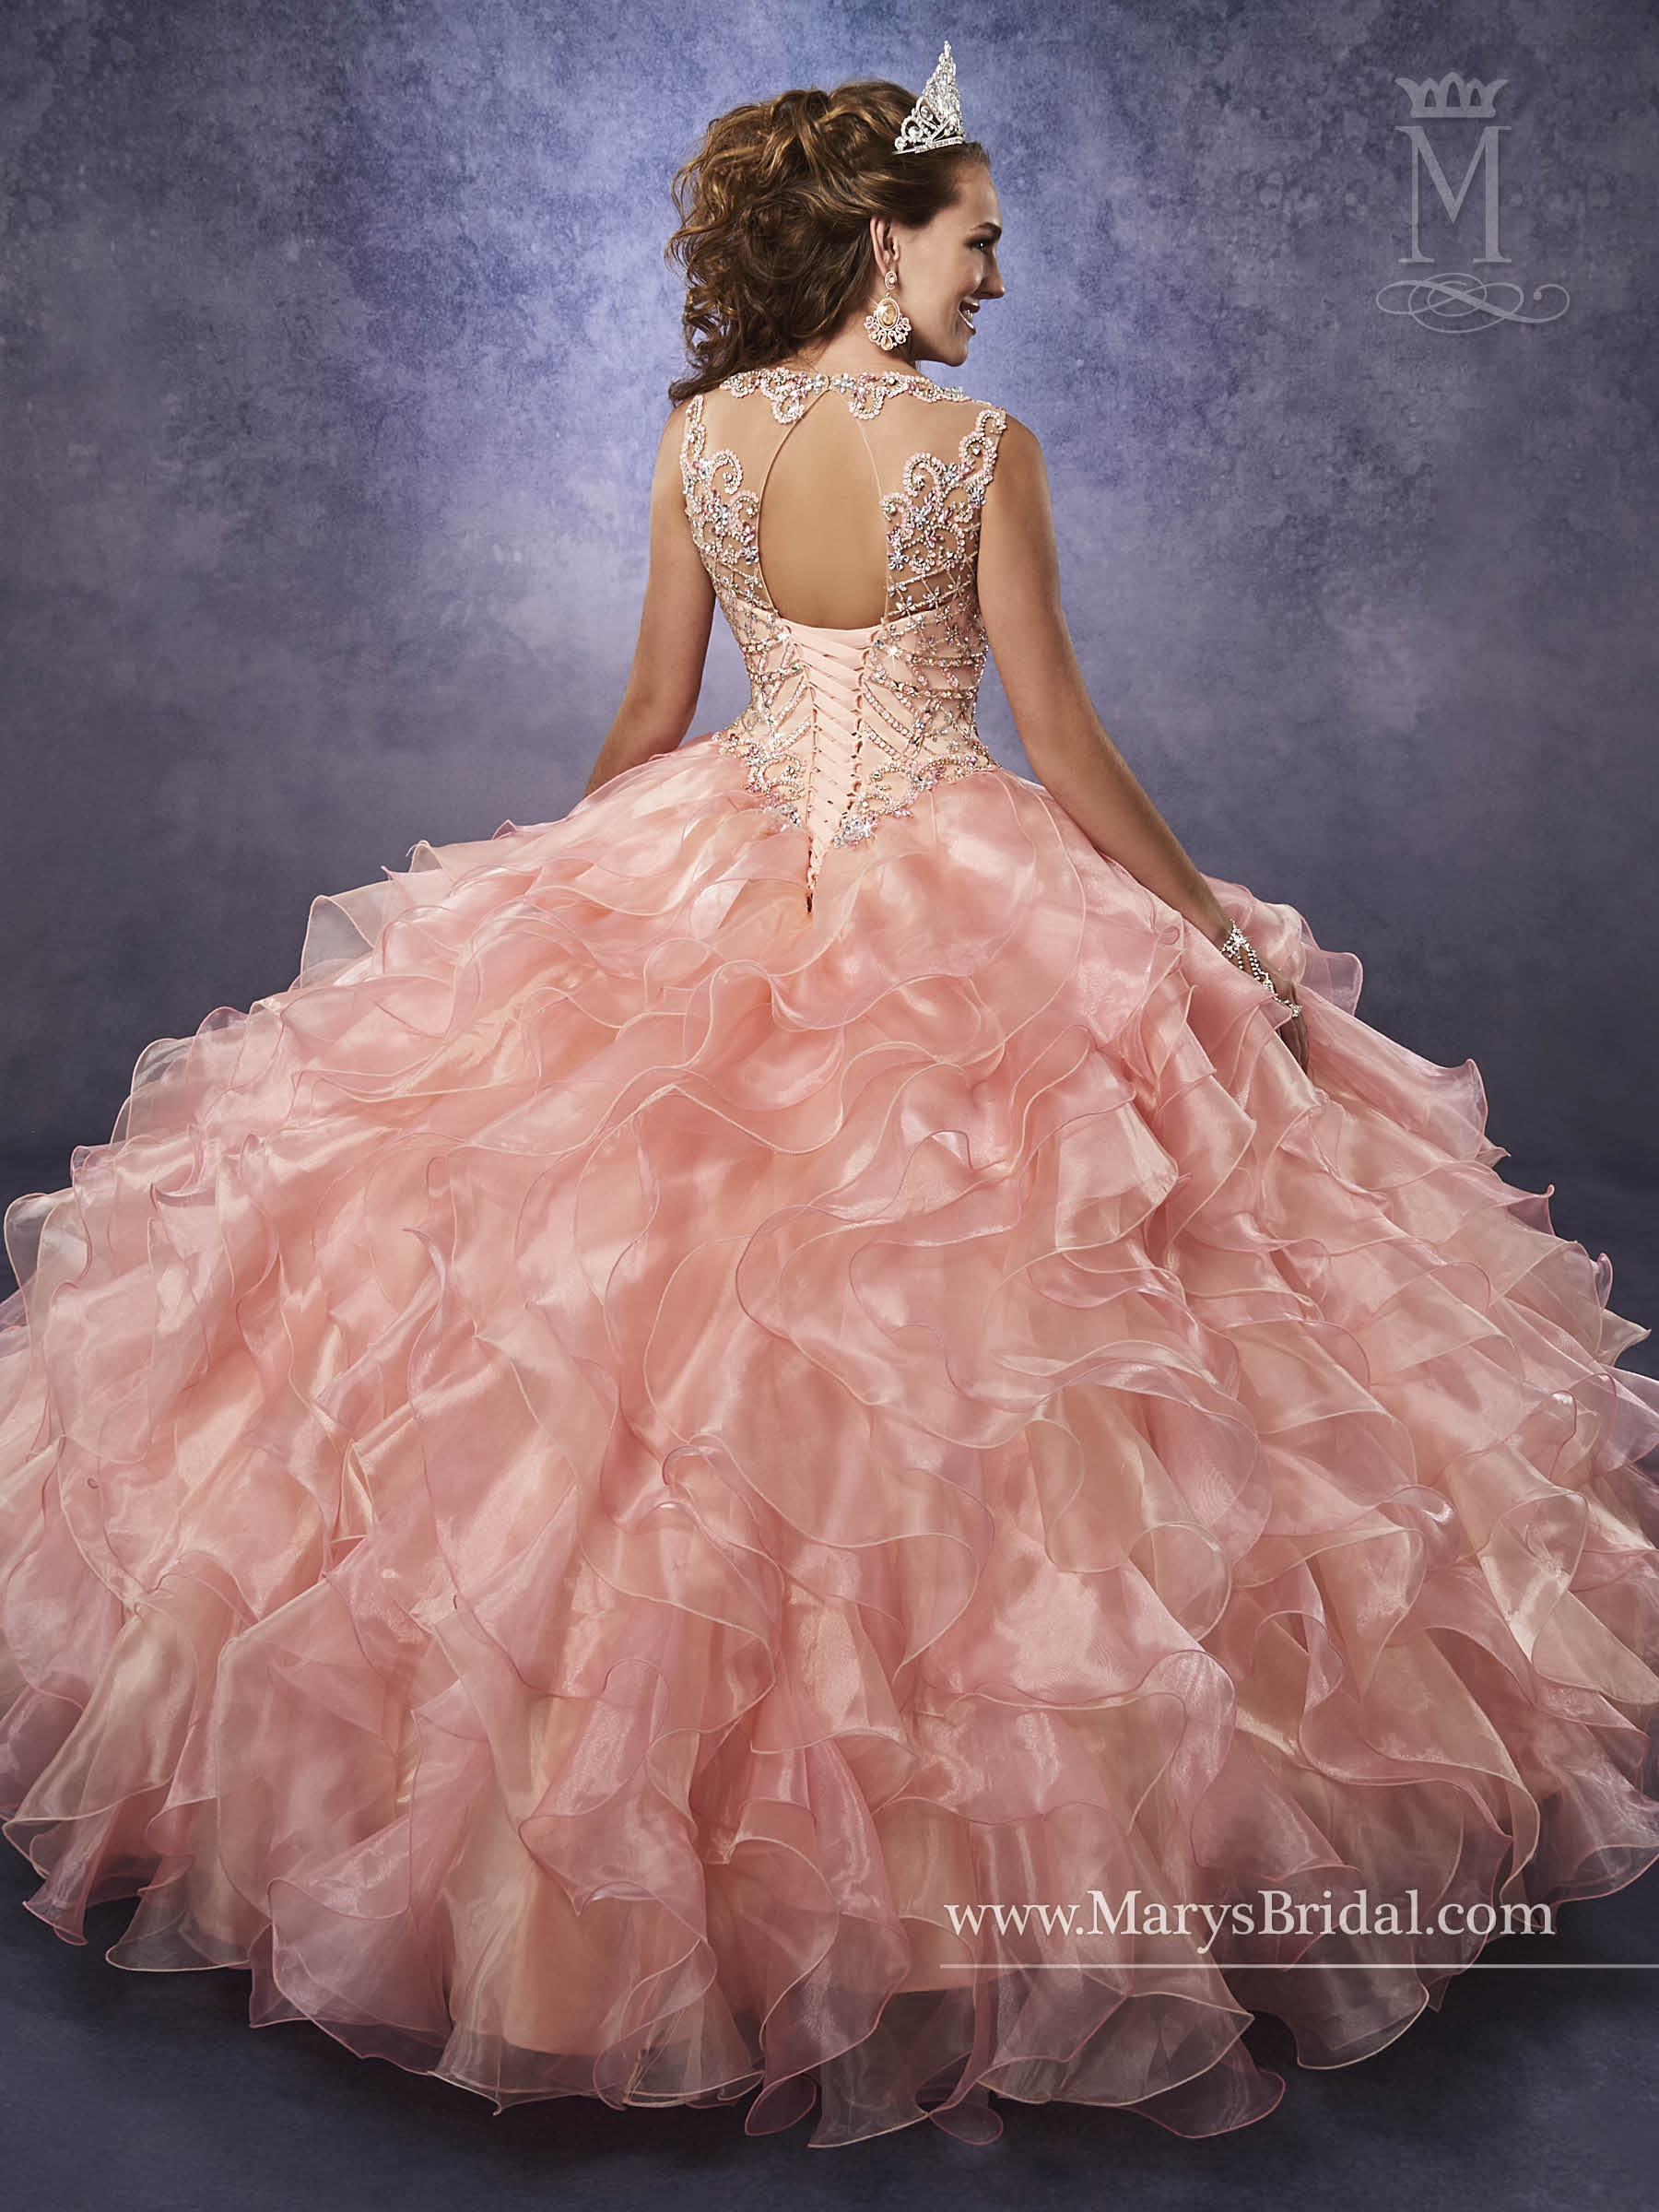 Marys Bridal 4q483 Quinceanera Dress Madamebridal Com